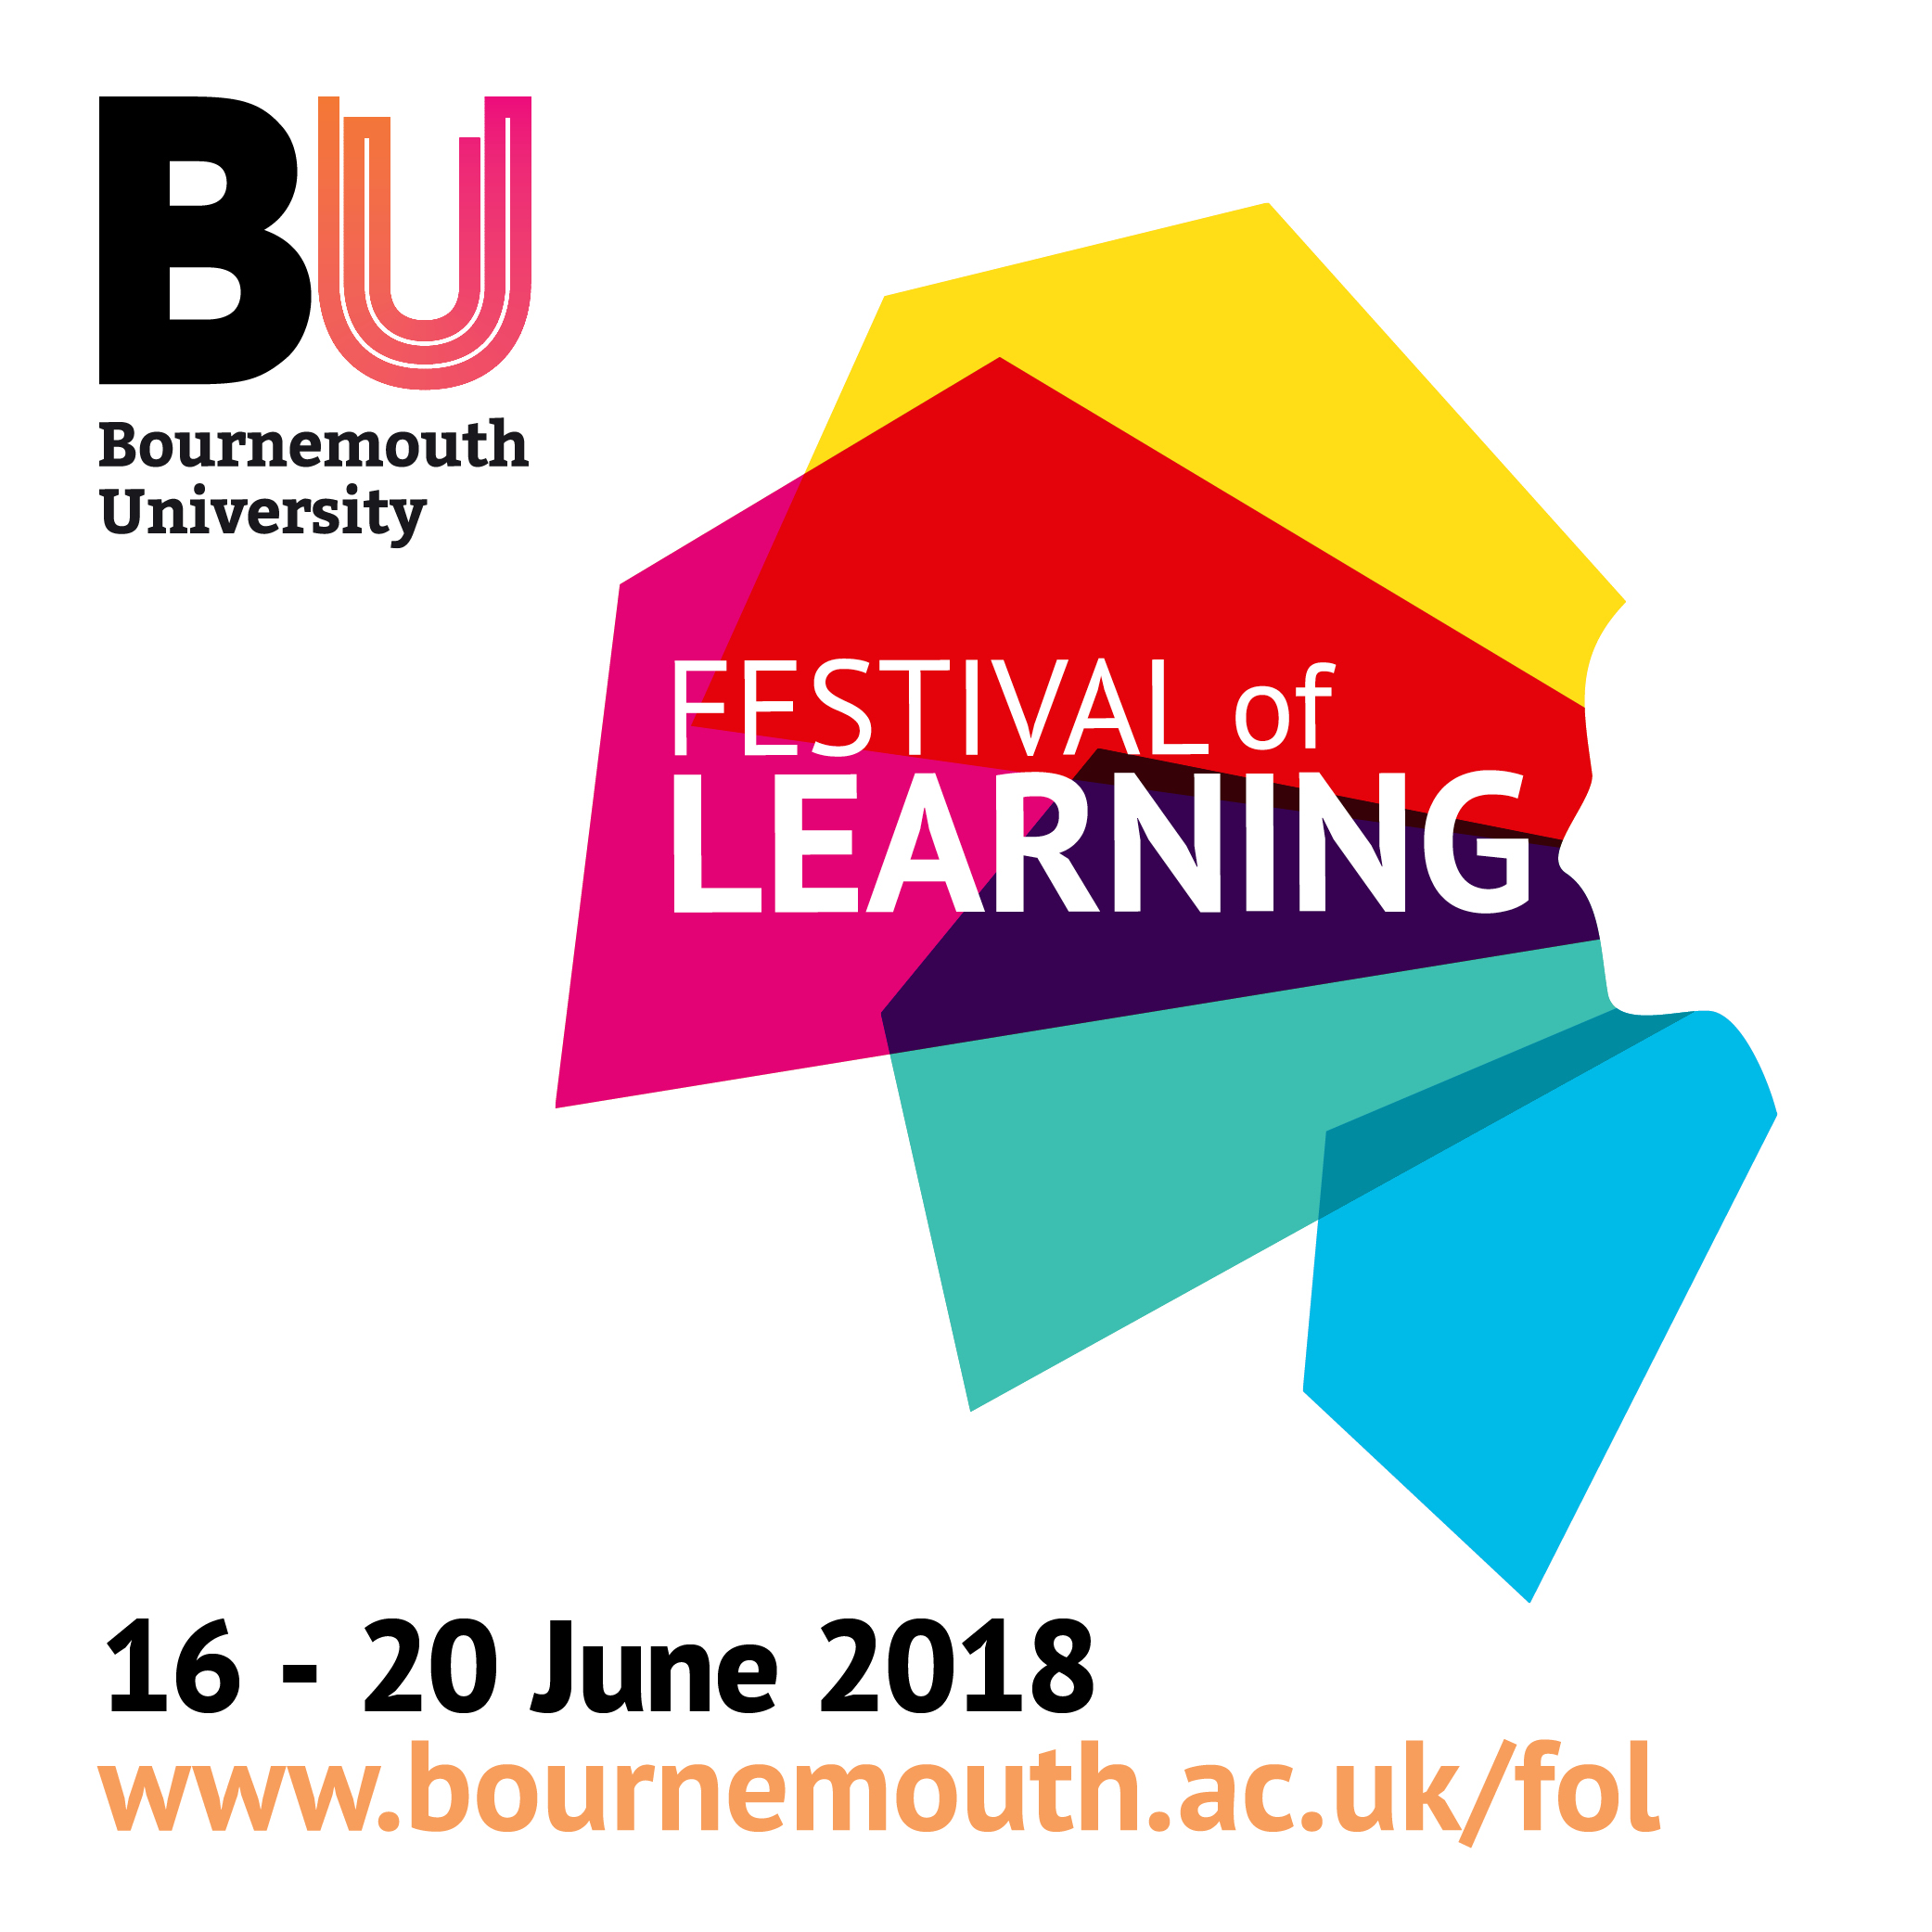 Bournemouth University's Festival of Learning 2018